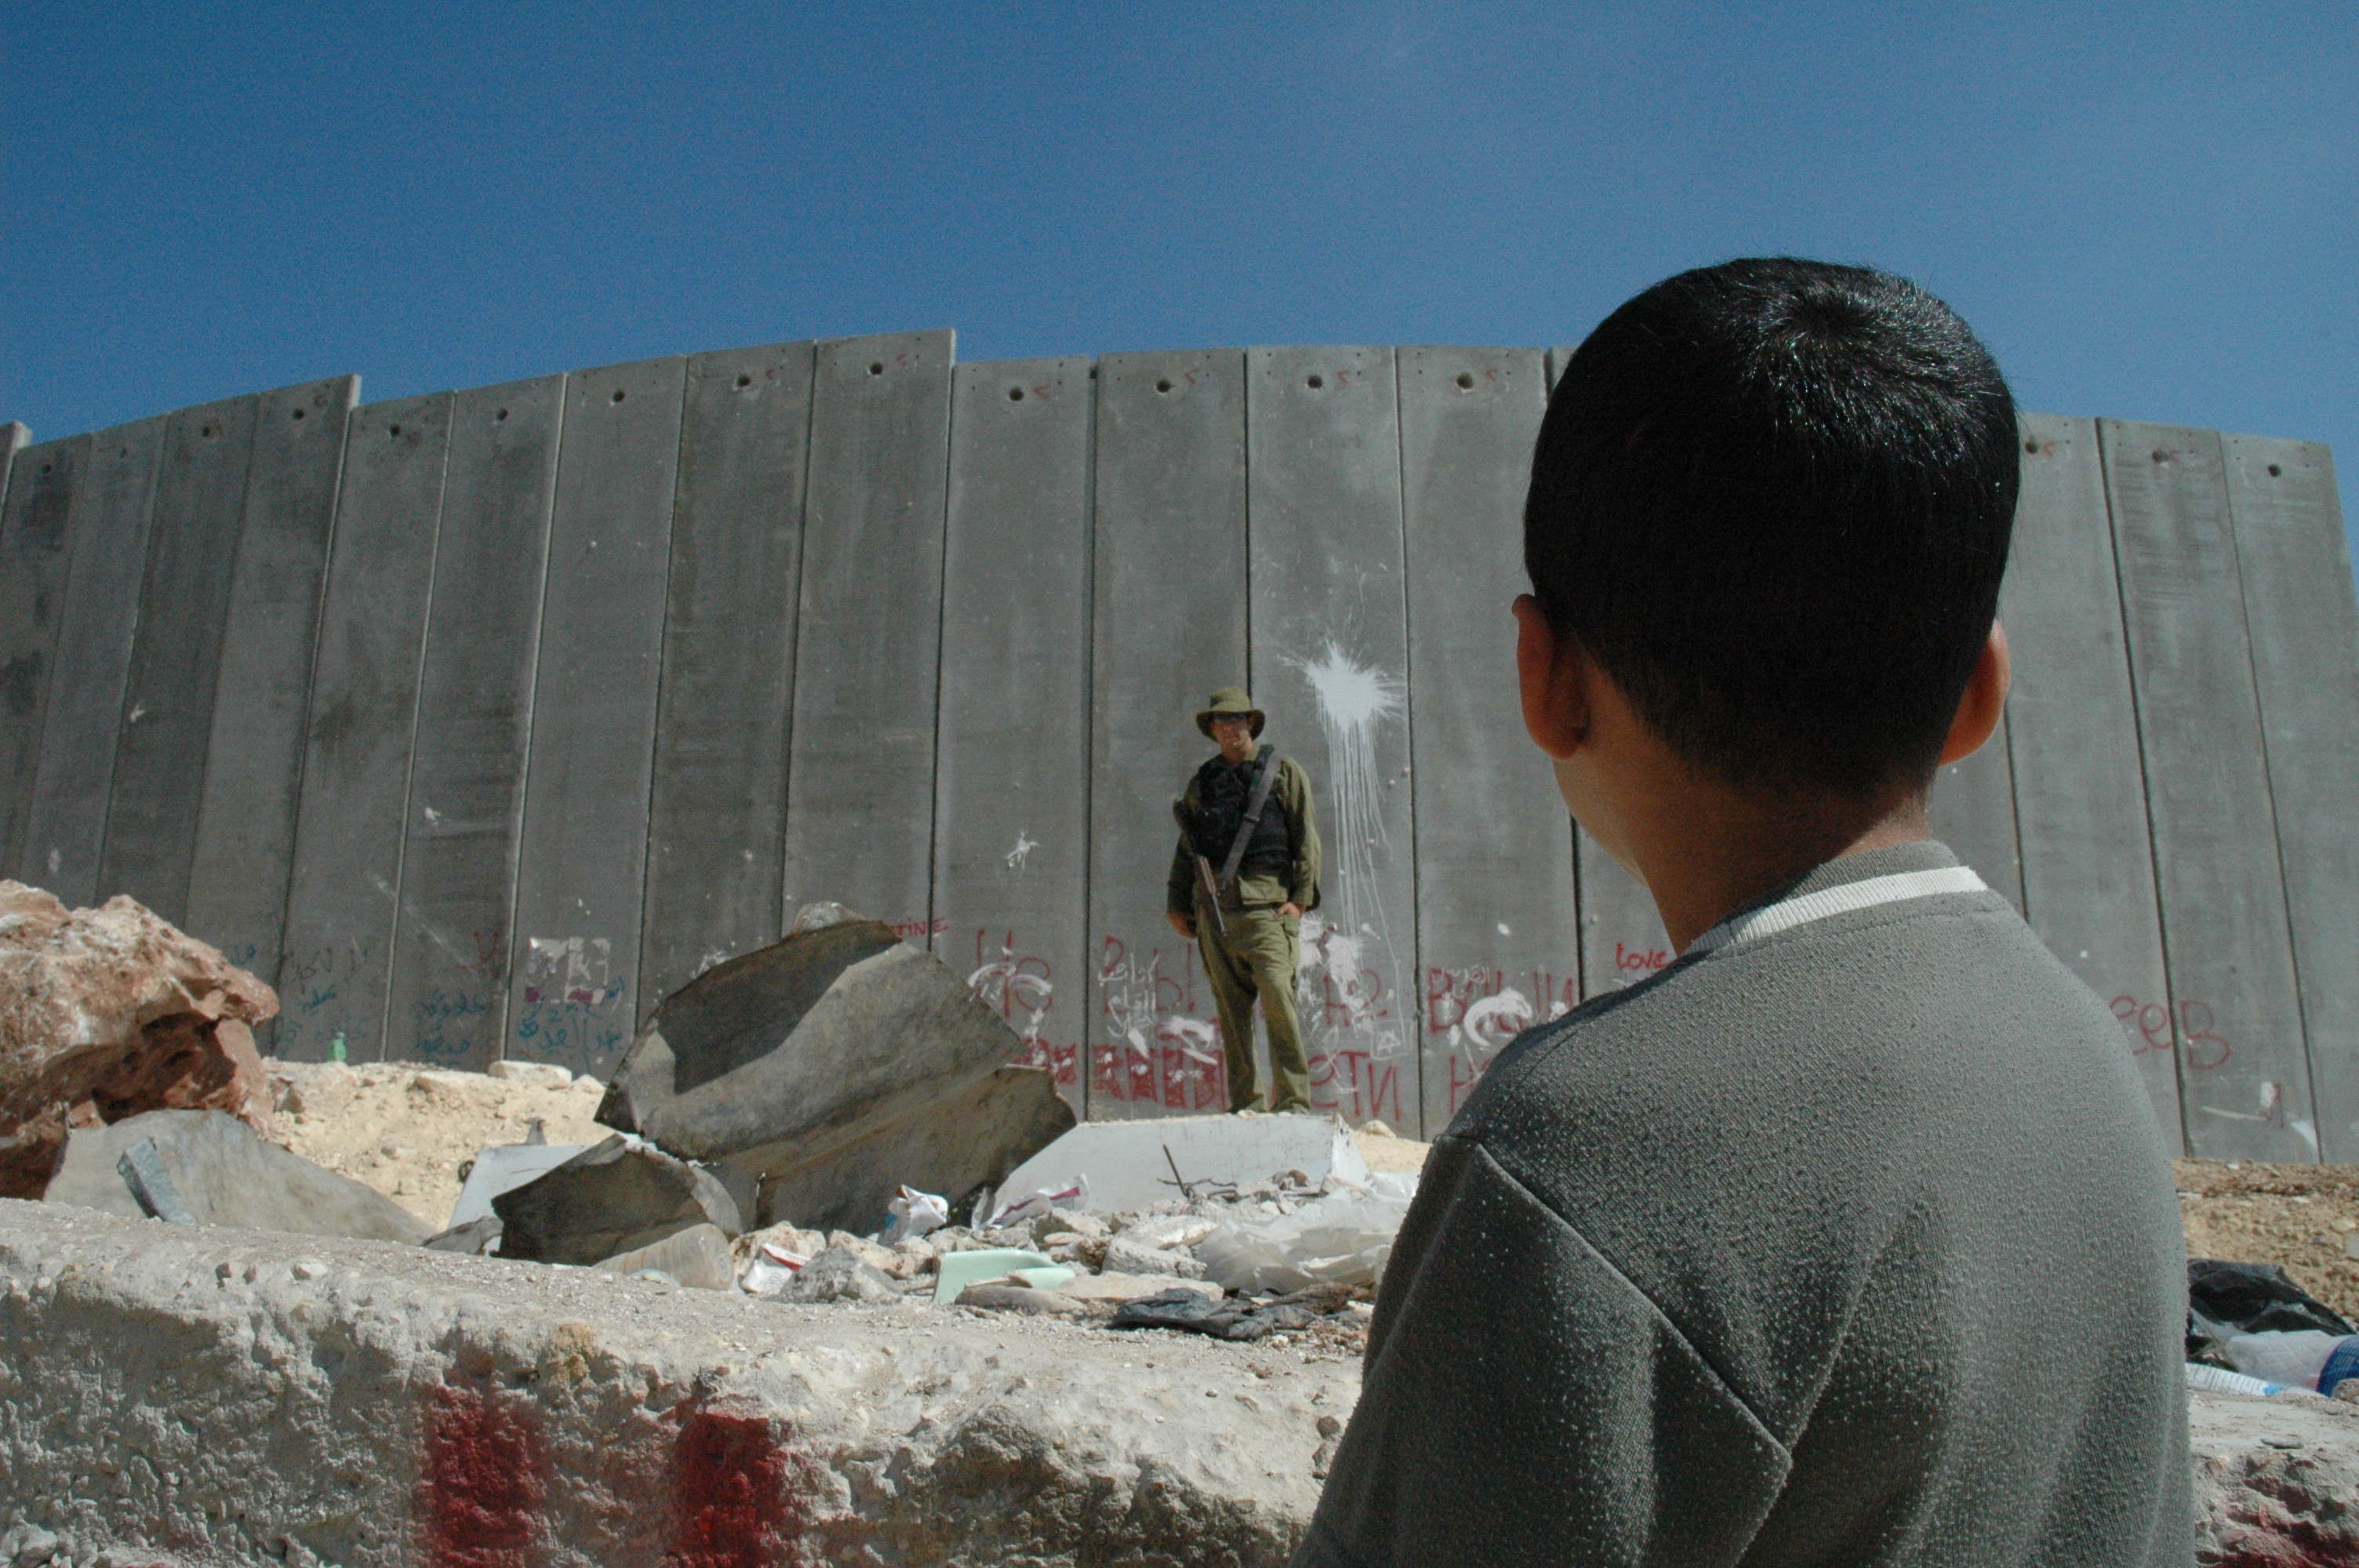 A boy and soldier in front of the West Bank Barrier